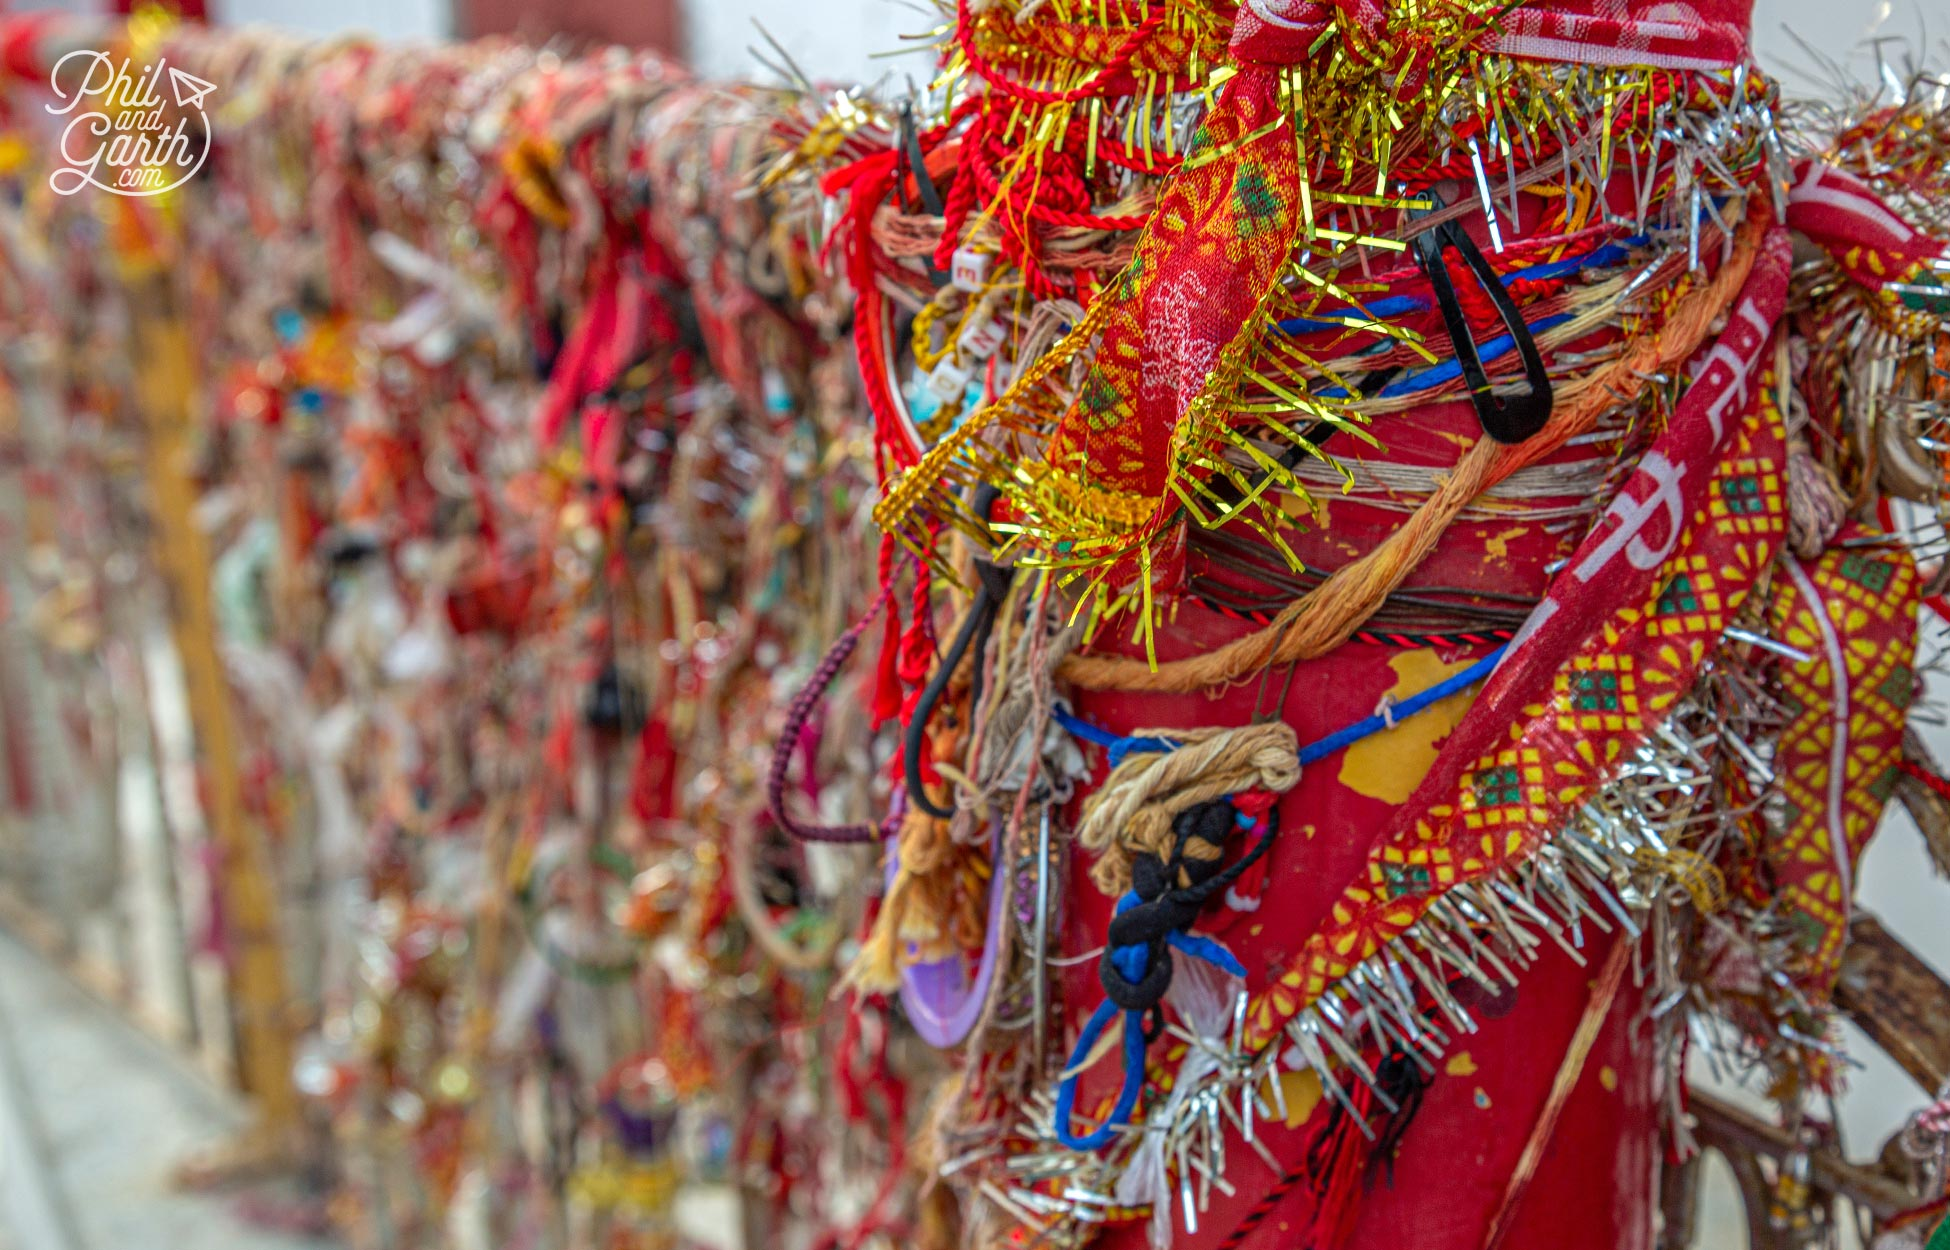 Hundreds of bracelets and strings of tinsel are tied to the temple's fence